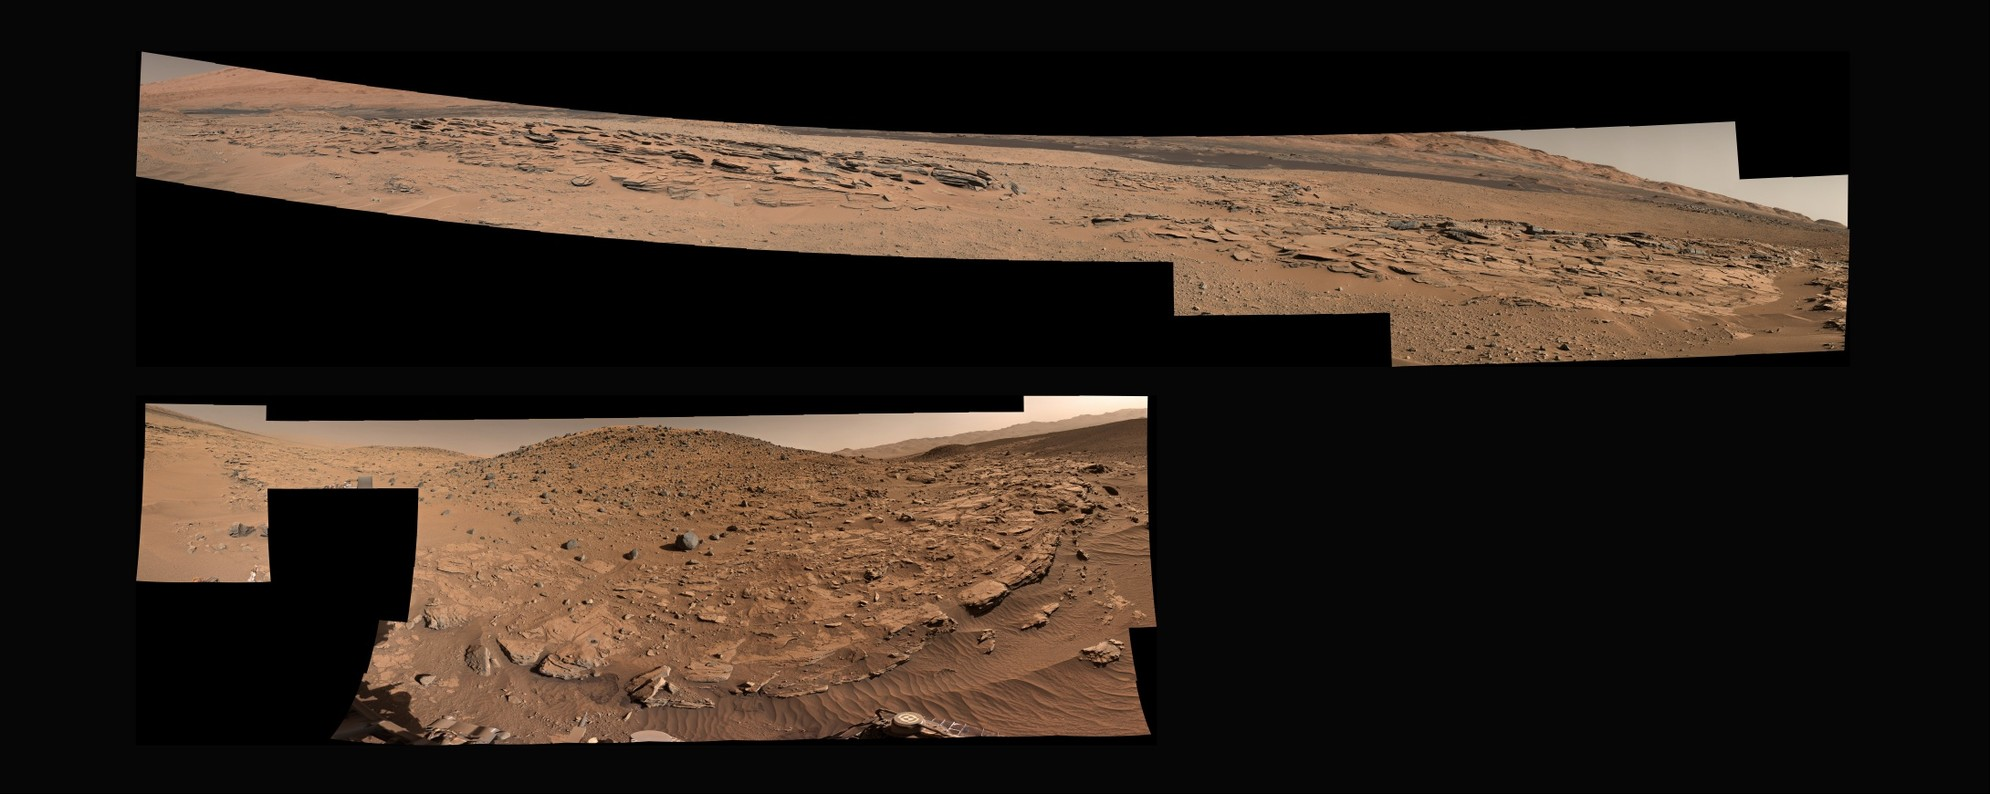 MSL Curiosity Rover - Sol 620 Right and Left Mastcam Composite [PDS]